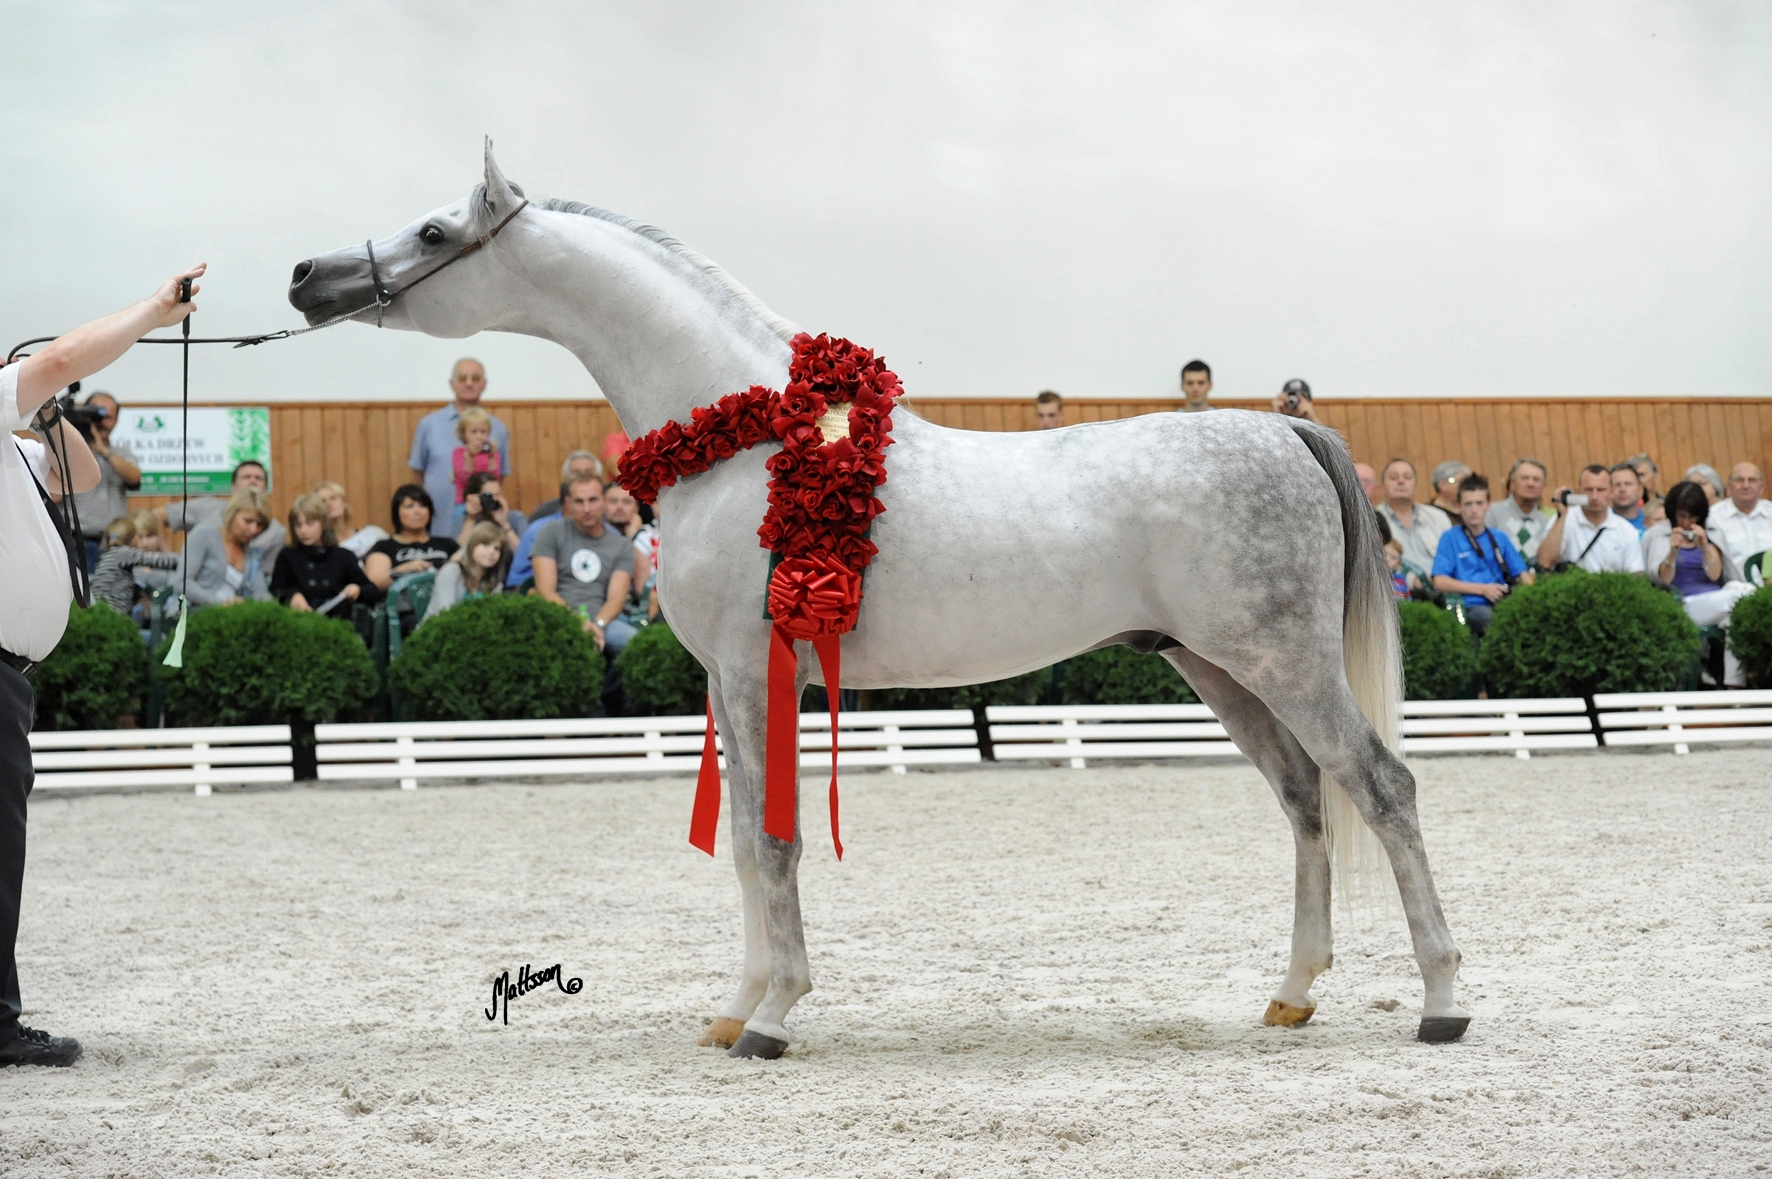 Kabsztad at the Michalow Breeding Parade in August 2011